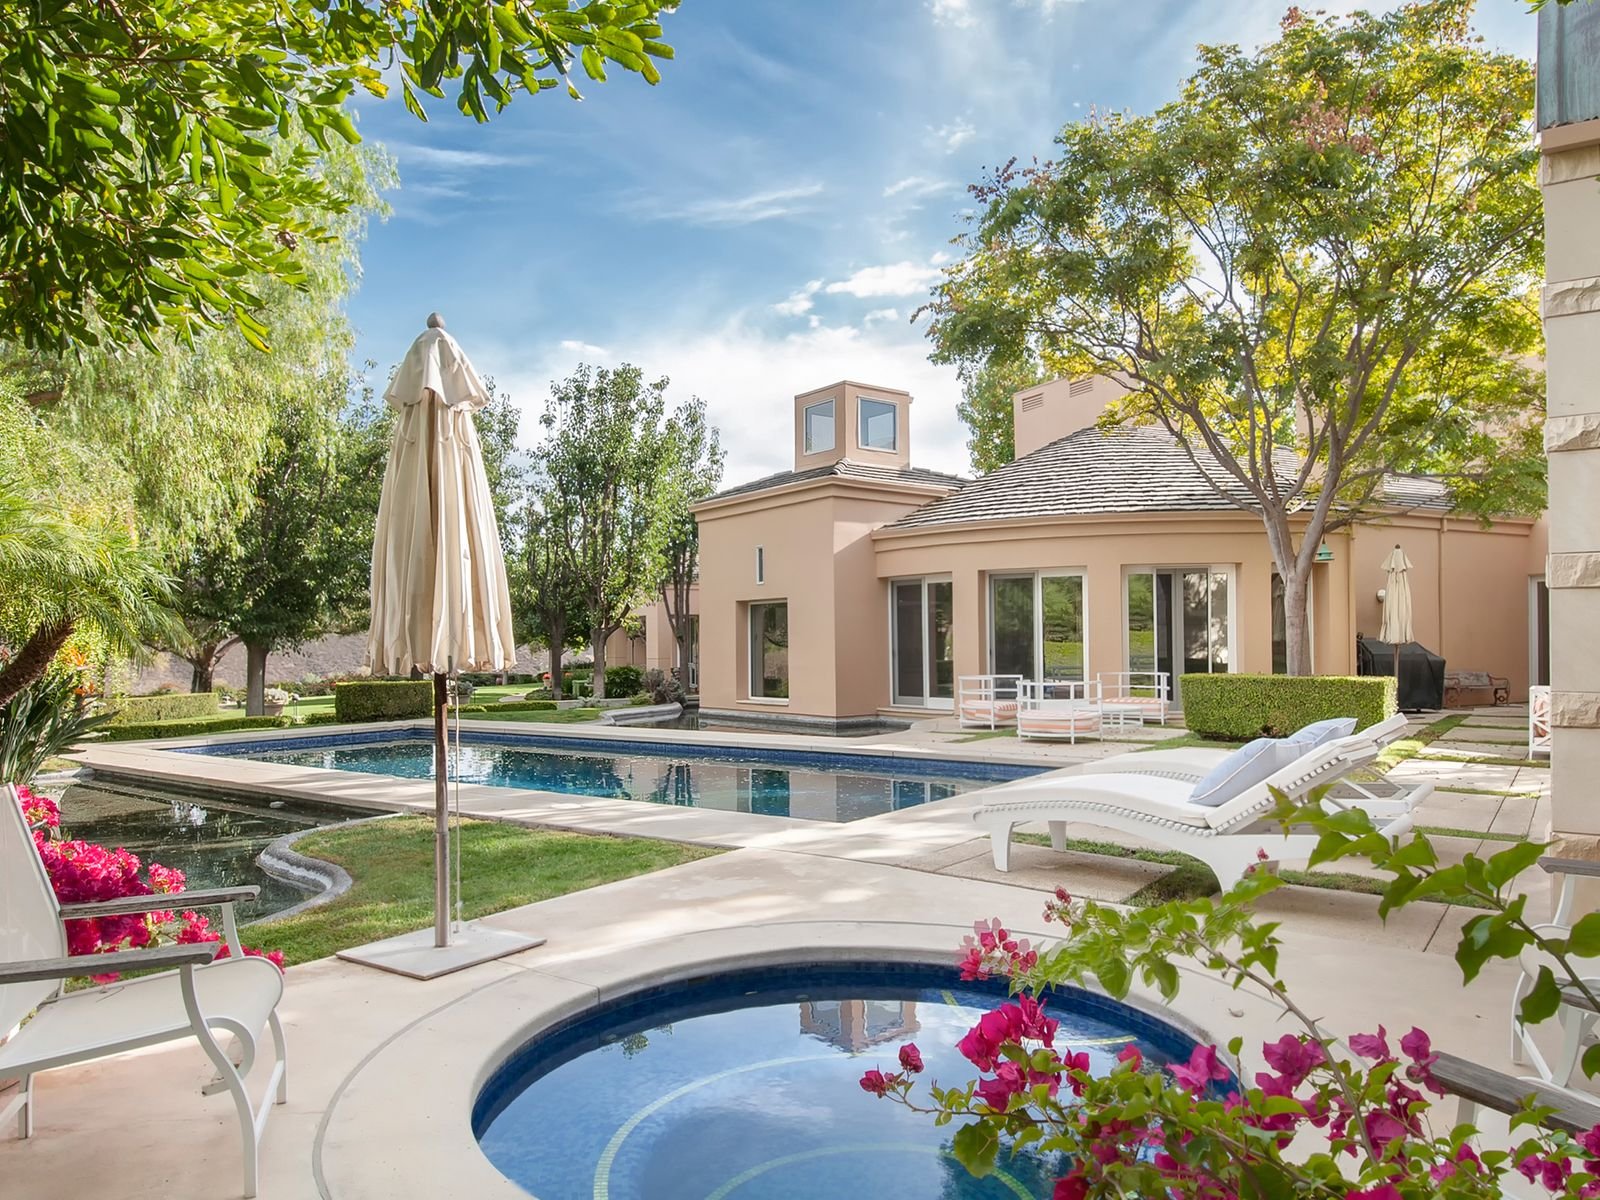 Overlooking the Golf Course, Westlake Village CA Single Family Home - Los Angeles Real Estate